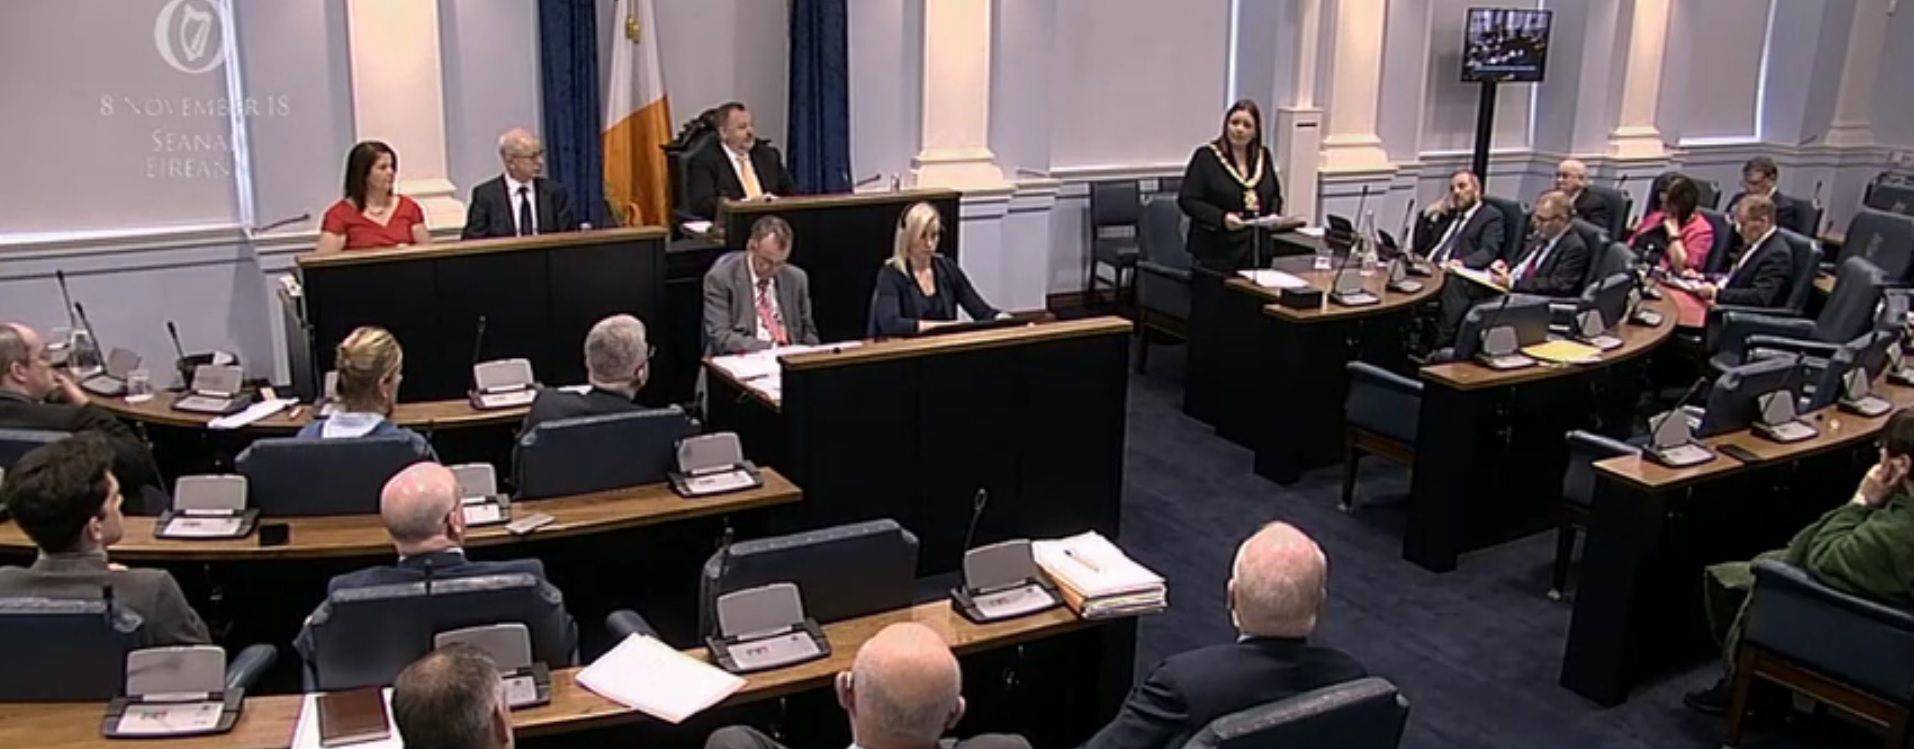 Lord Mayor of Belfast, Deirdre Hargey, addressing Seanad Éireann